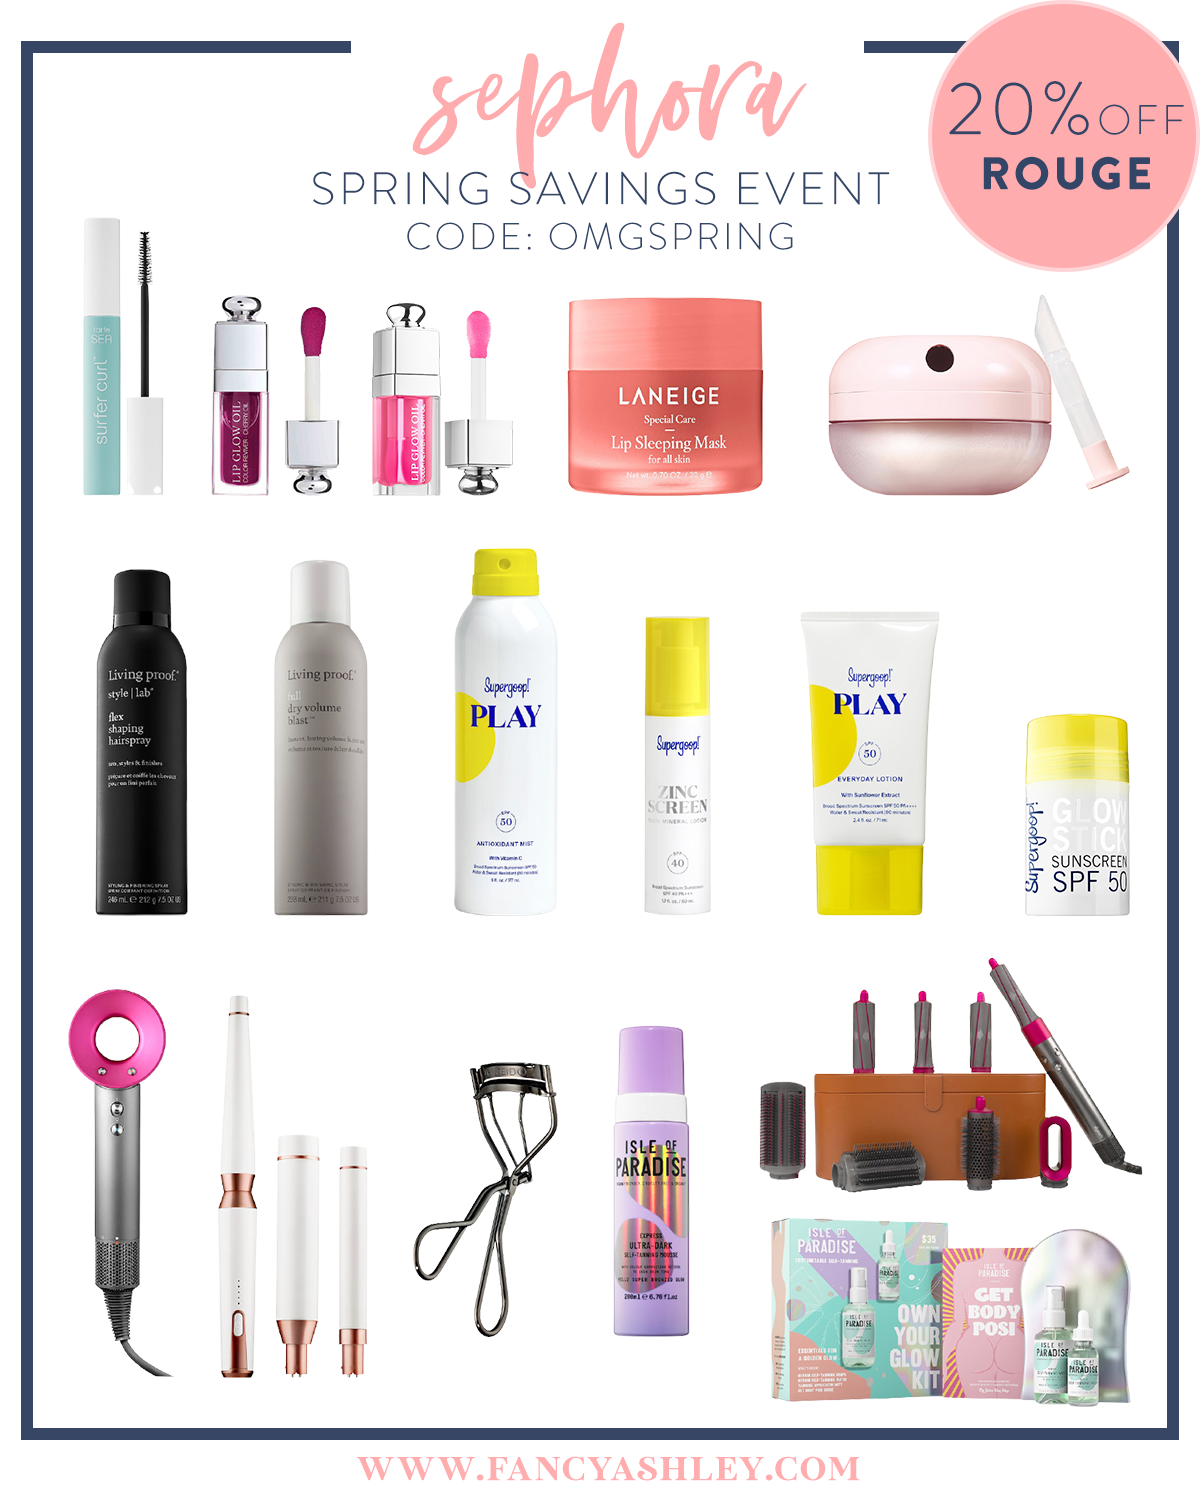 Sephora Springs Savings Event by popular Houston beauty blog, The House of Fancy: collage image of Laneige lip sleeping mask, Supergoop sunscreen, Dyson hair dryer, T3 curing wand, lipgloss, Isle of Paradise tanning spray, eyelash curler, mascara, and Living Proof hair spray.